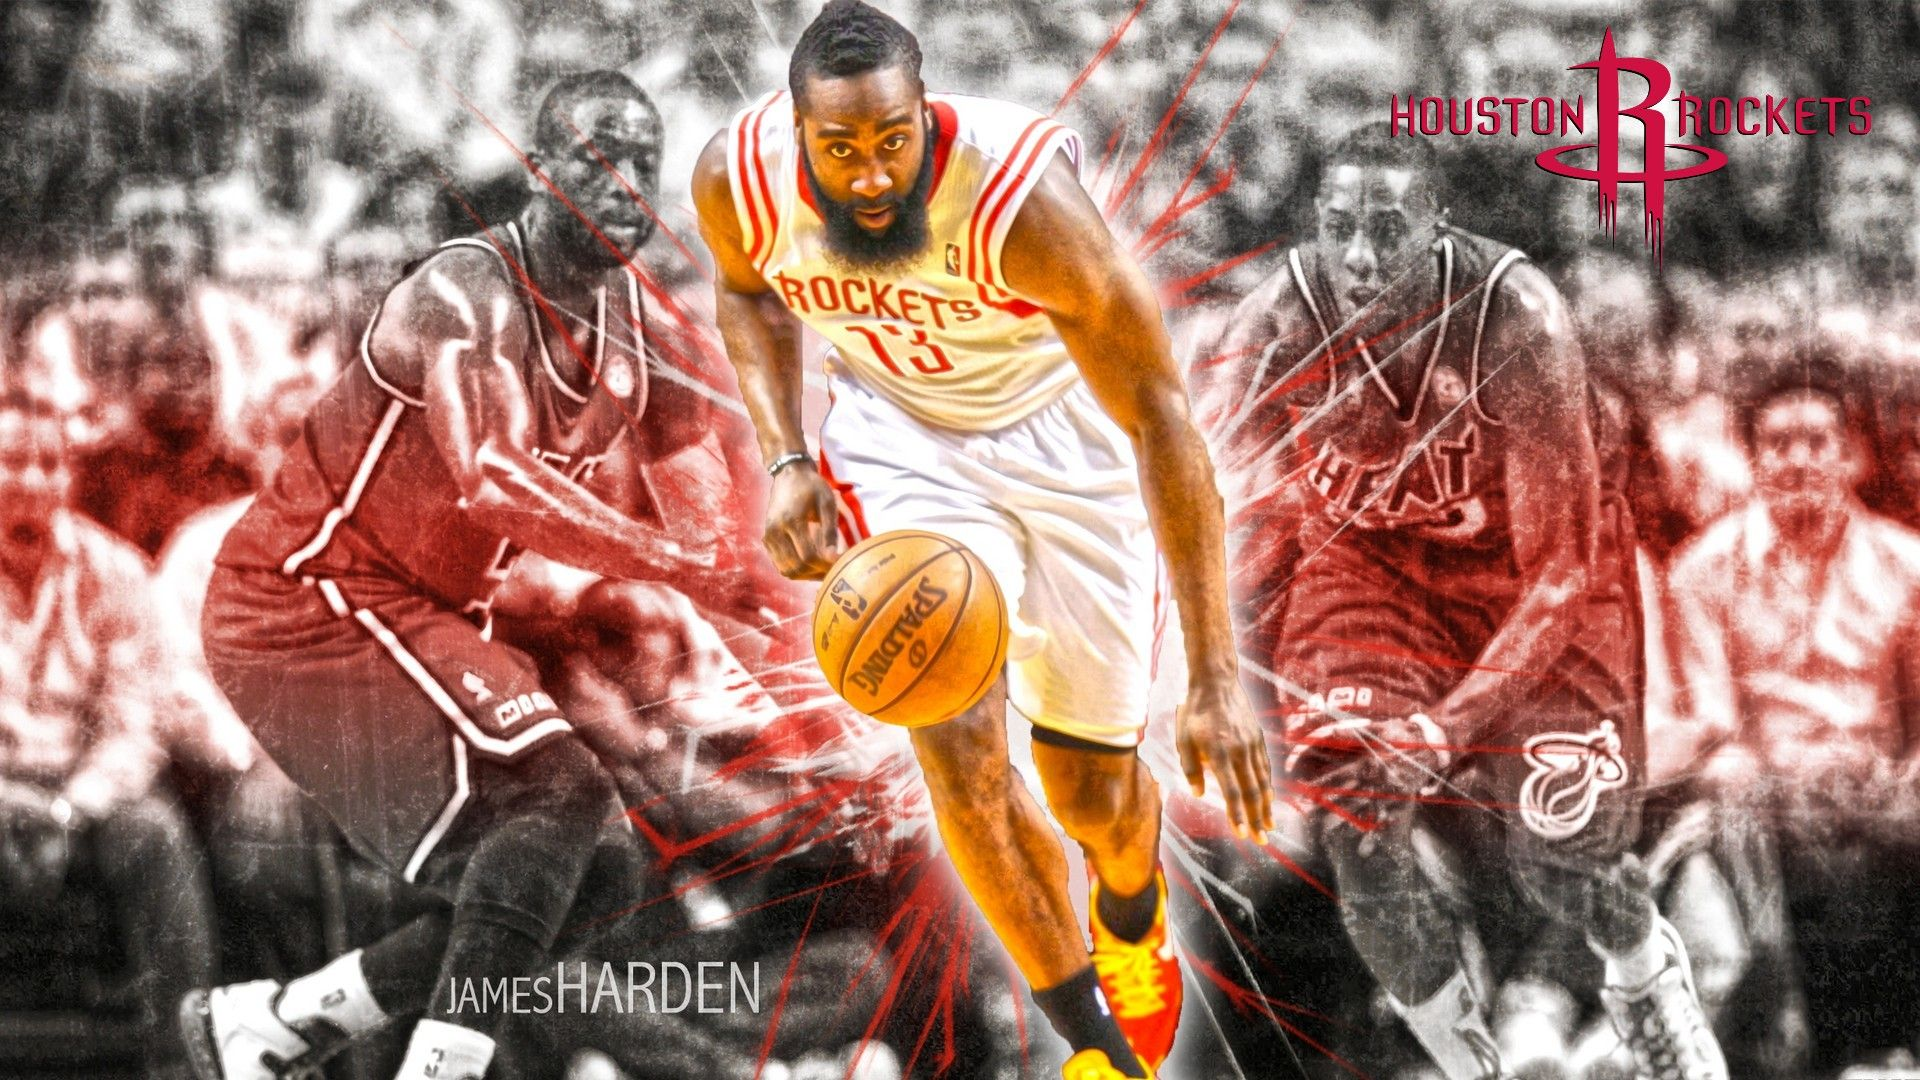 James Harden Wallpaper Hd In 2020 Nba Background Nba Wallpapers James Harden